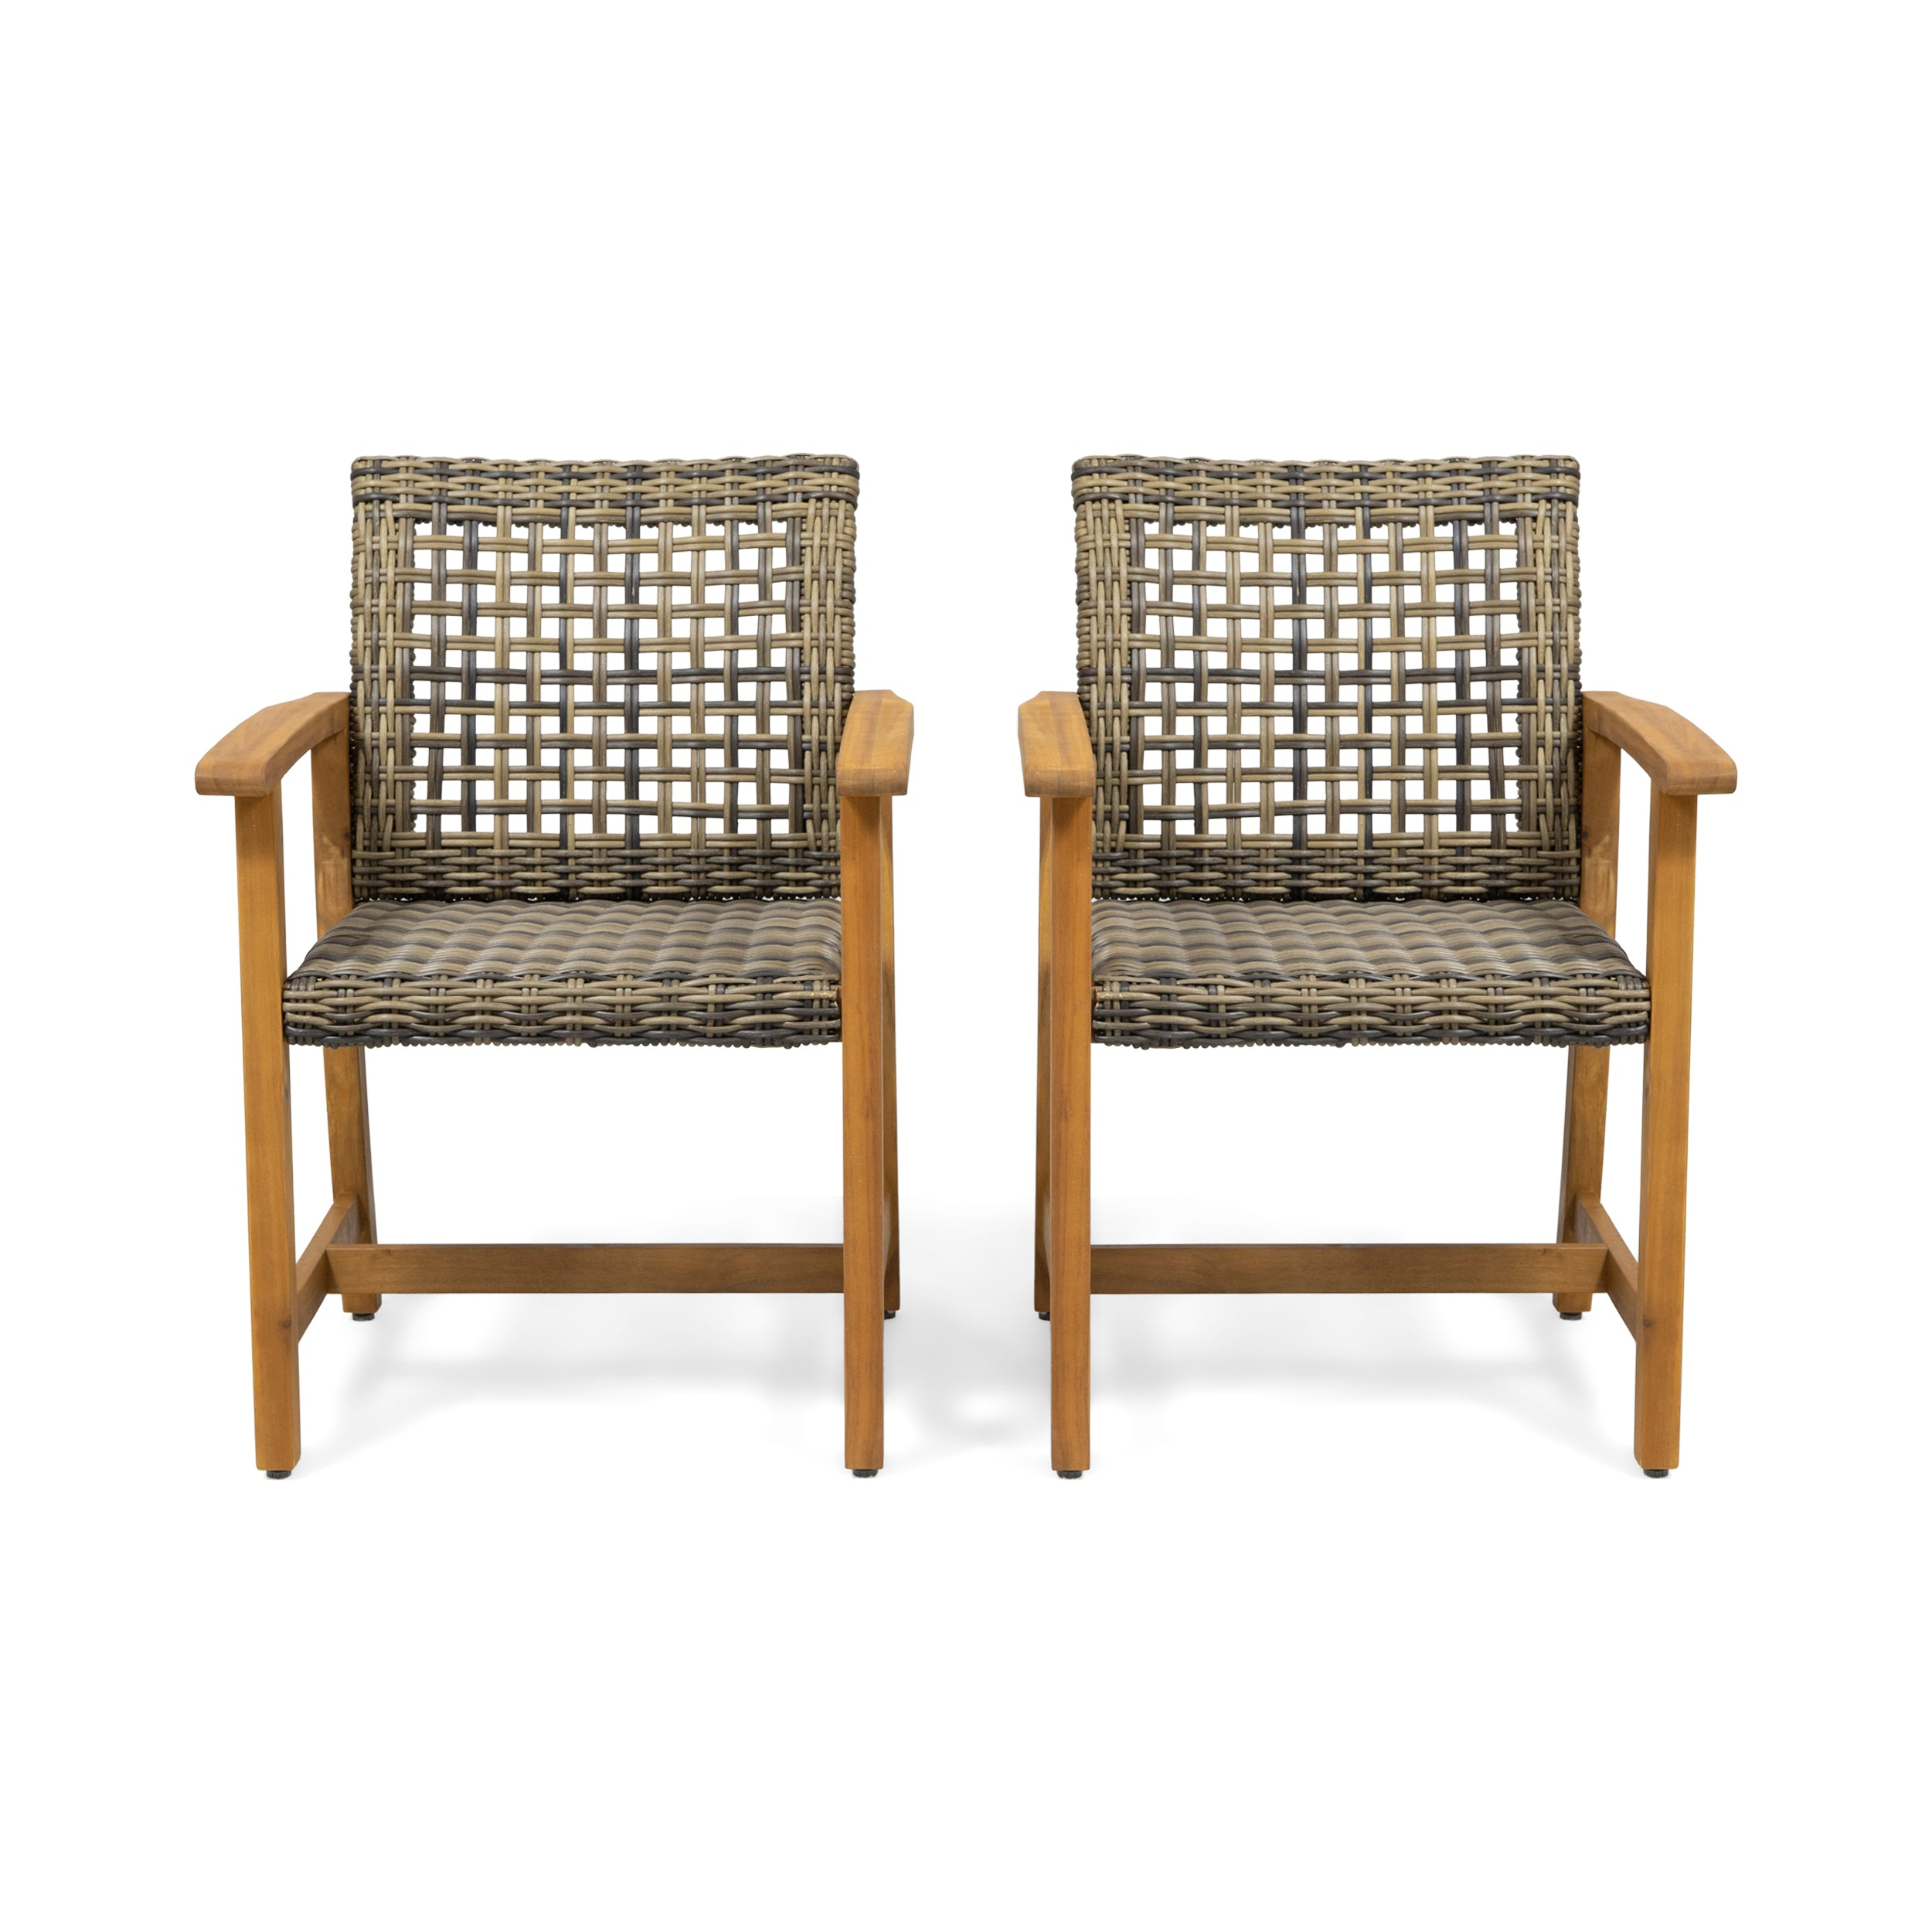 Alyssa Outdoor Acacia Wood and Wicker Dining Chair Set of 2 Light Gray Wash Mix Black